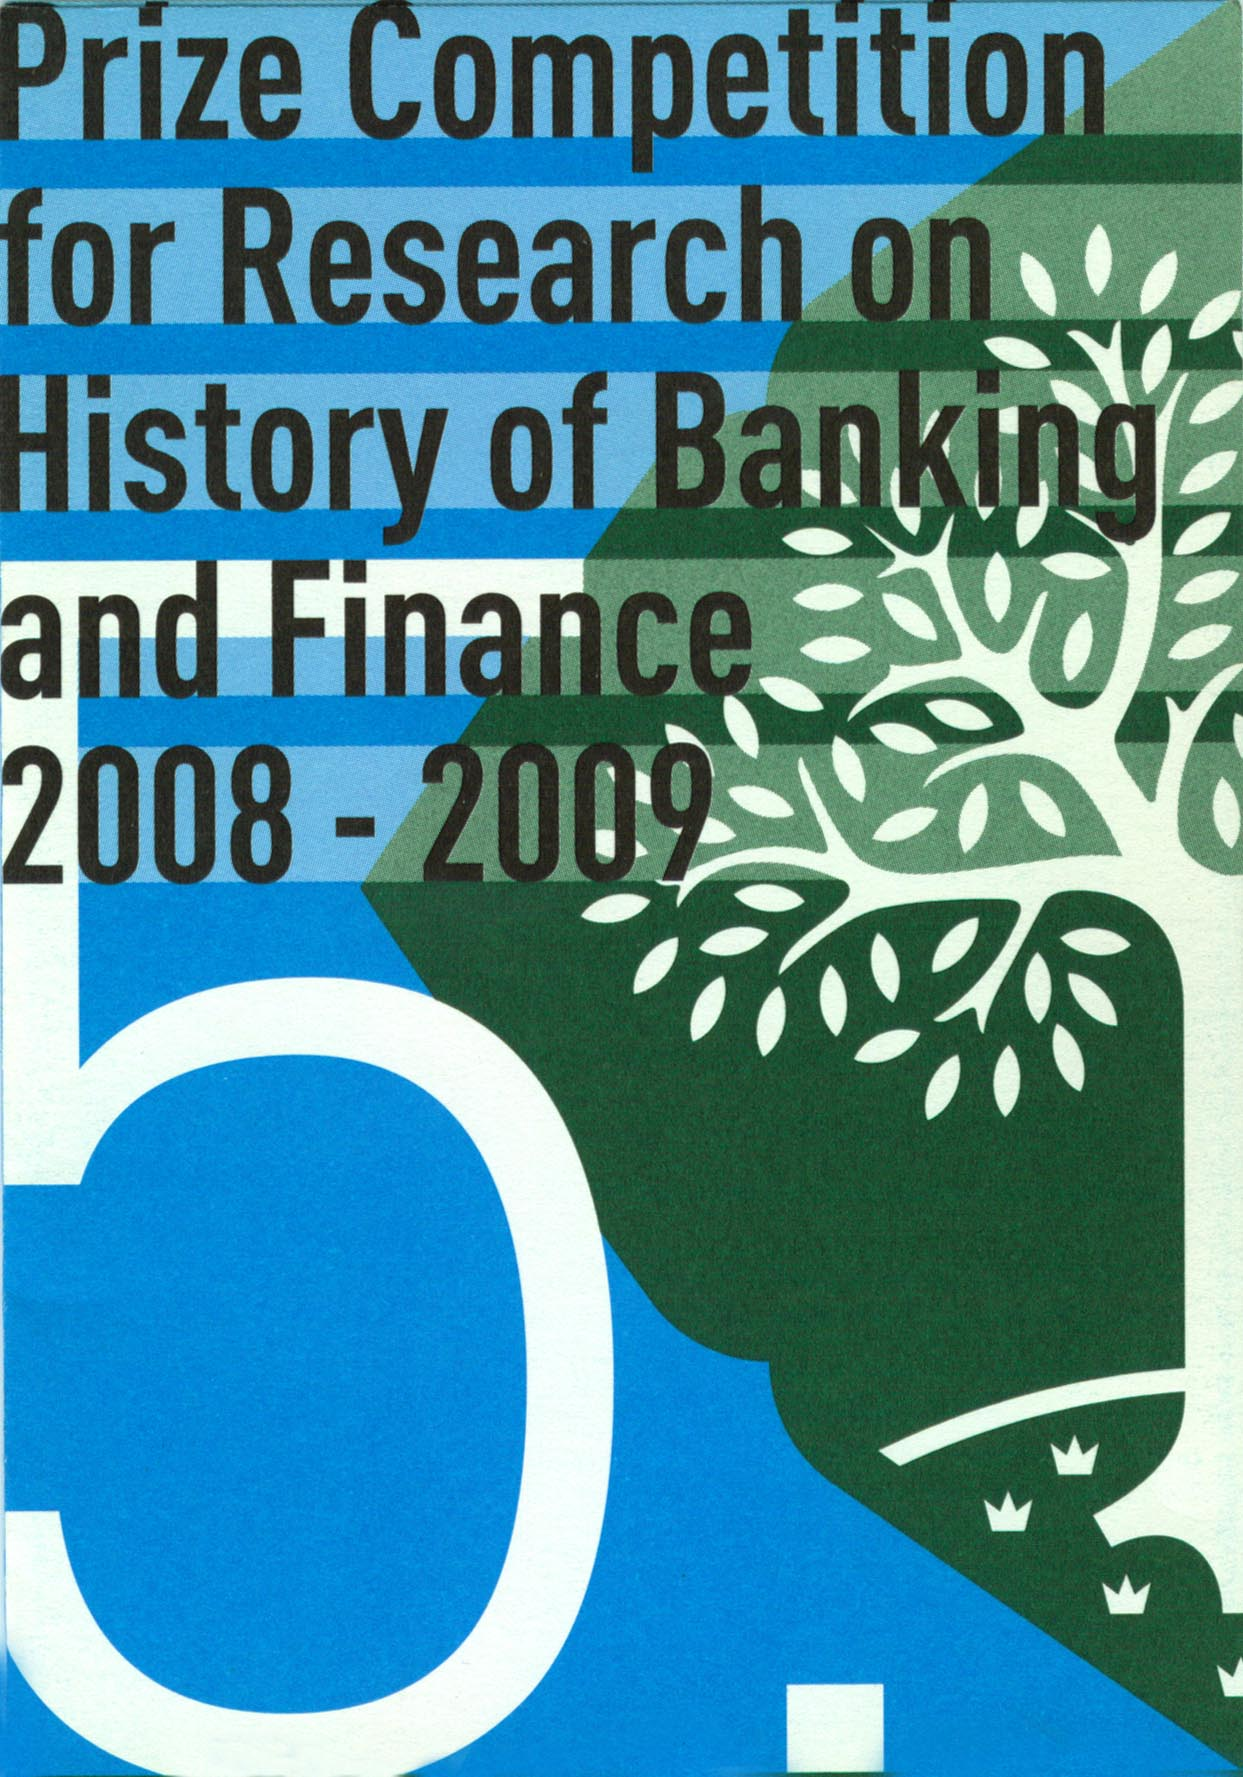 Dissertation On Banking And Finance